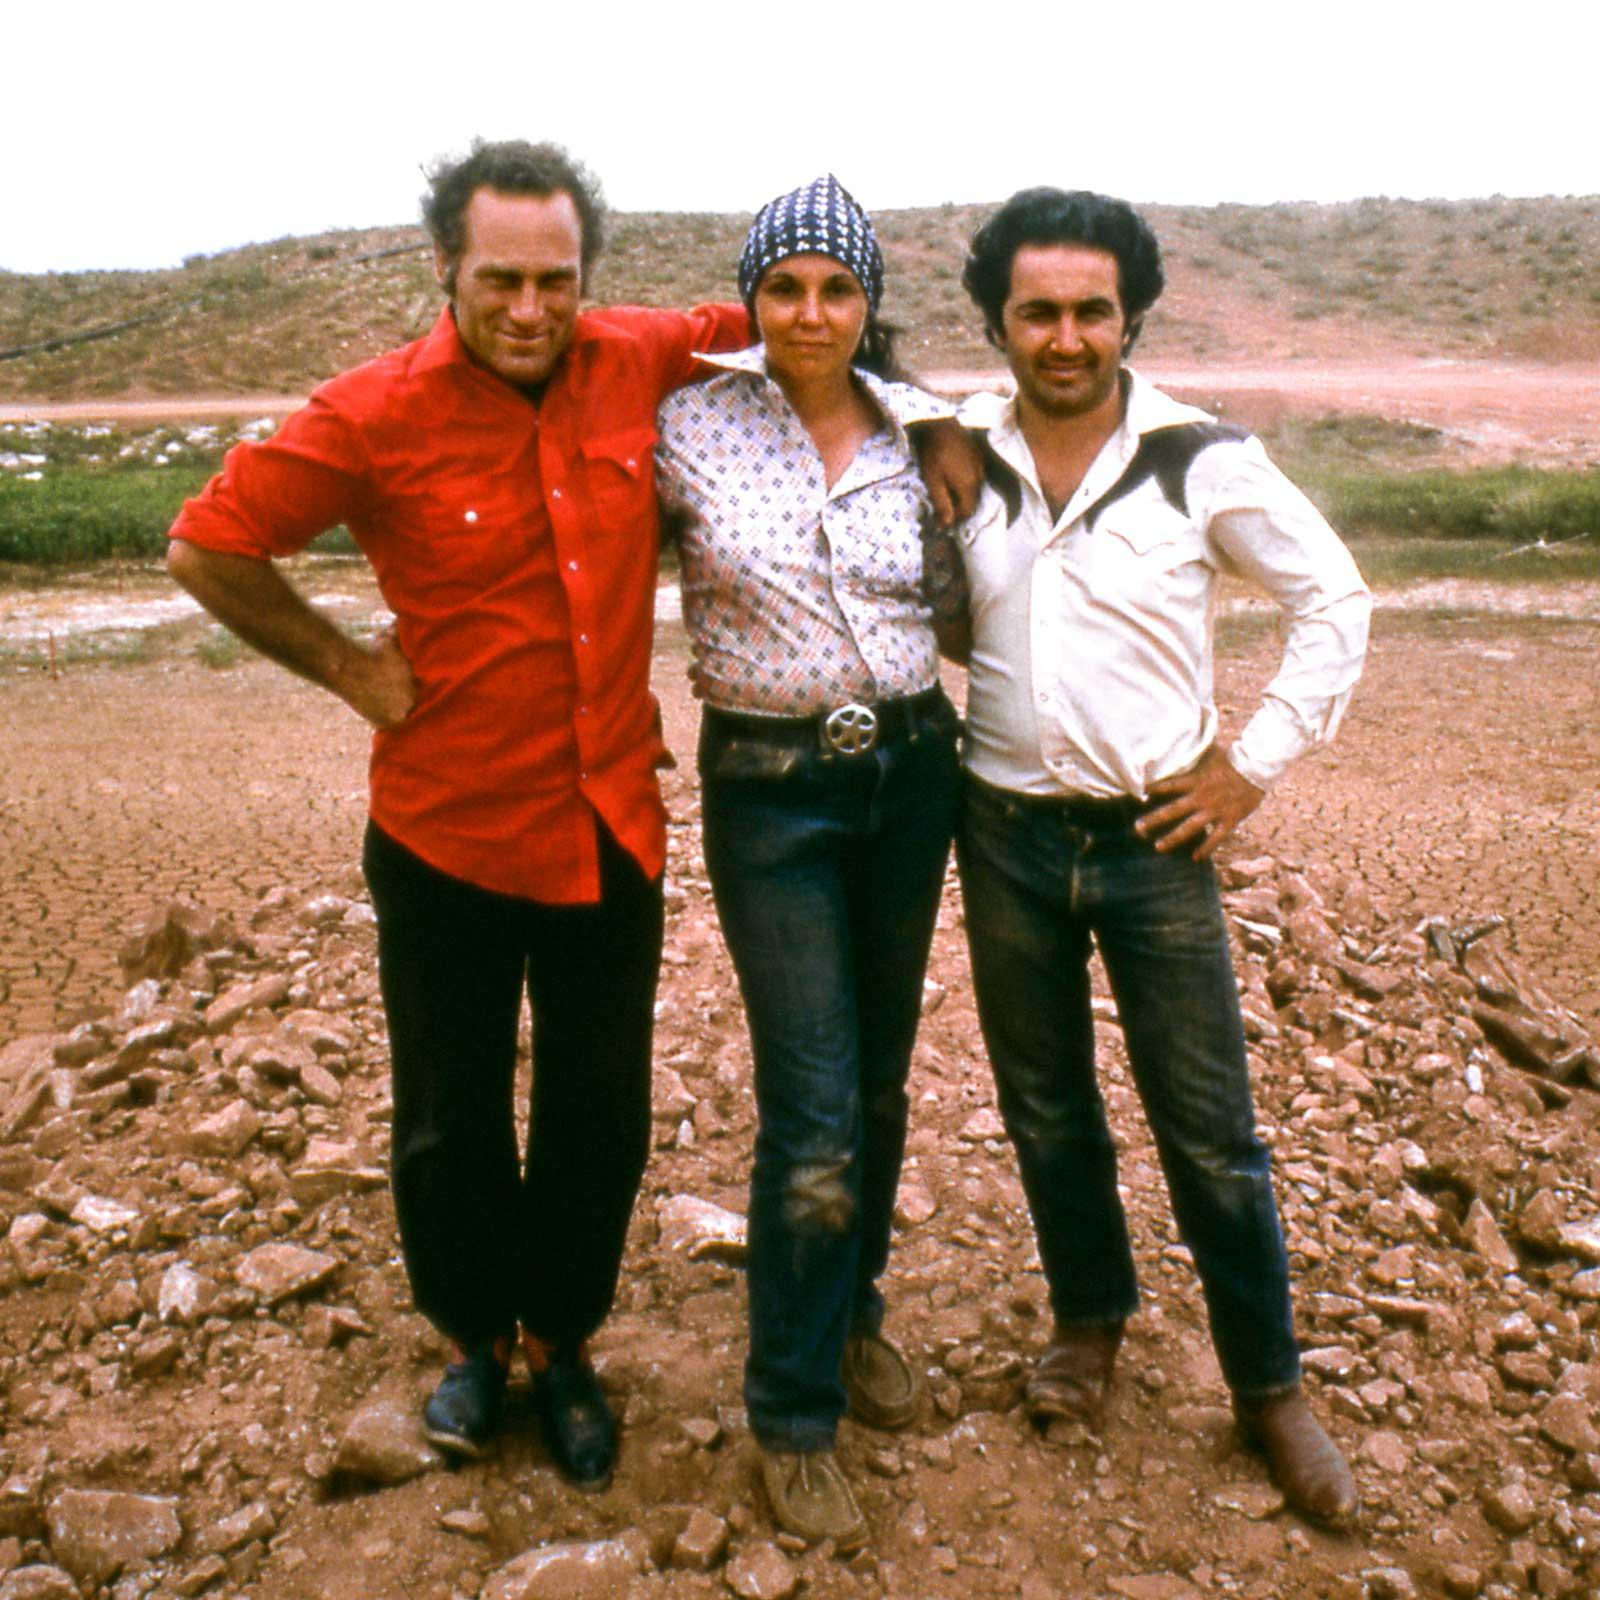 Three figures standing at the site of Amarillo Ramp in Texas